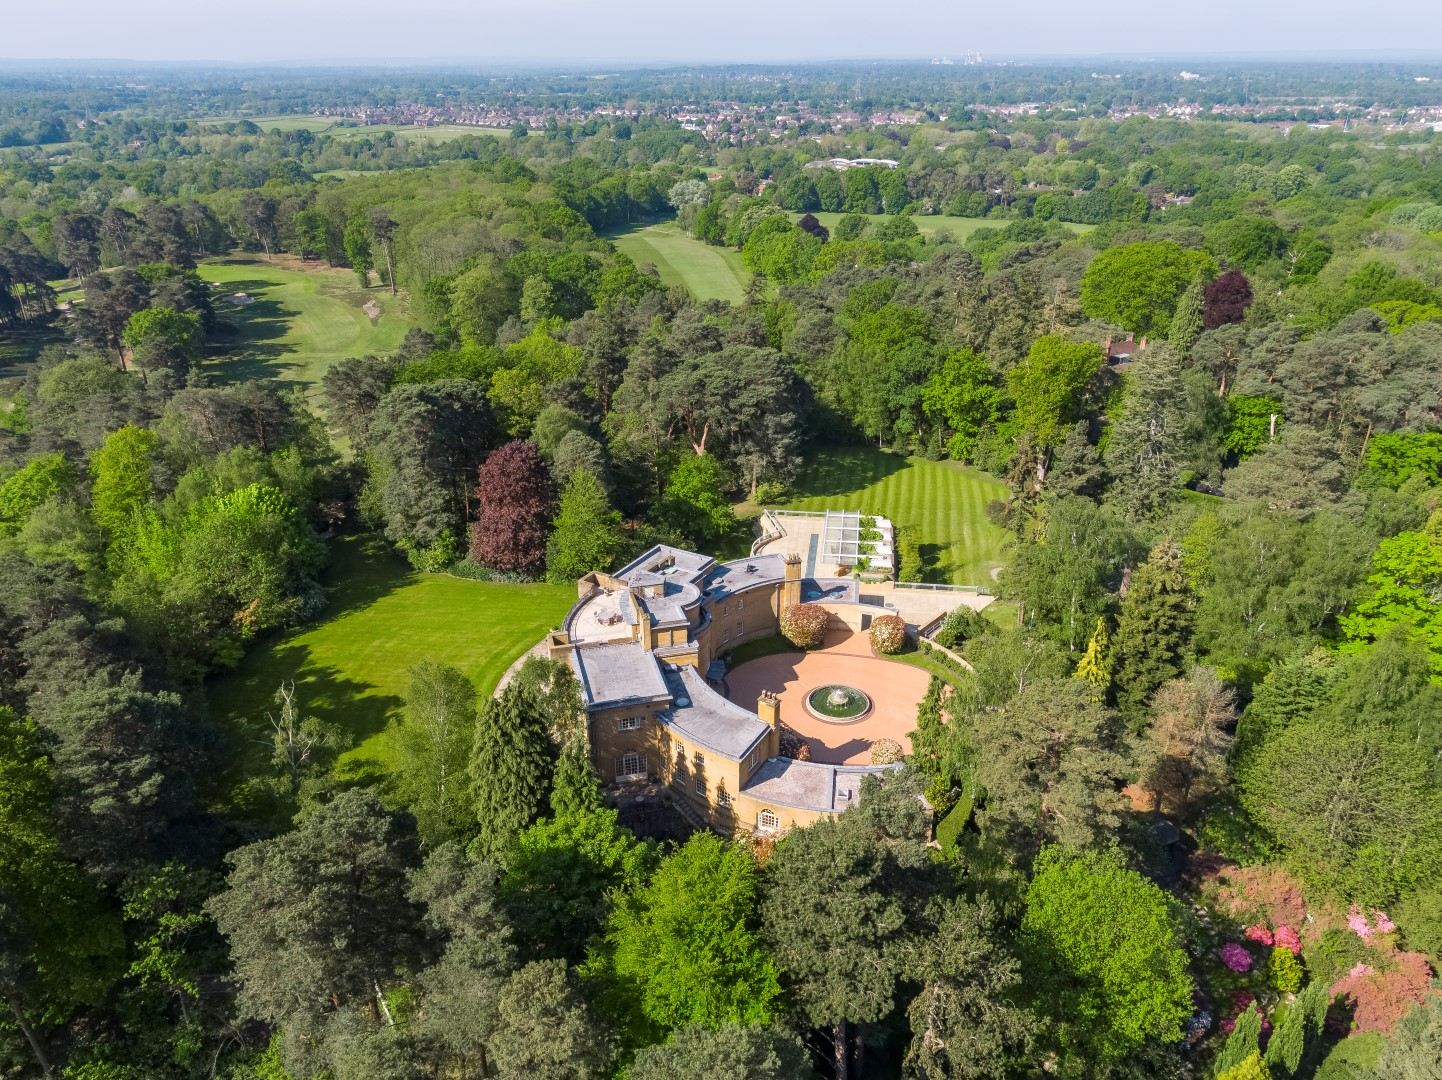 Hamstone-House-South-Ridge-St-Georges-Hill-Weybridge-KT13-0NF-DRONE-76 (Large)